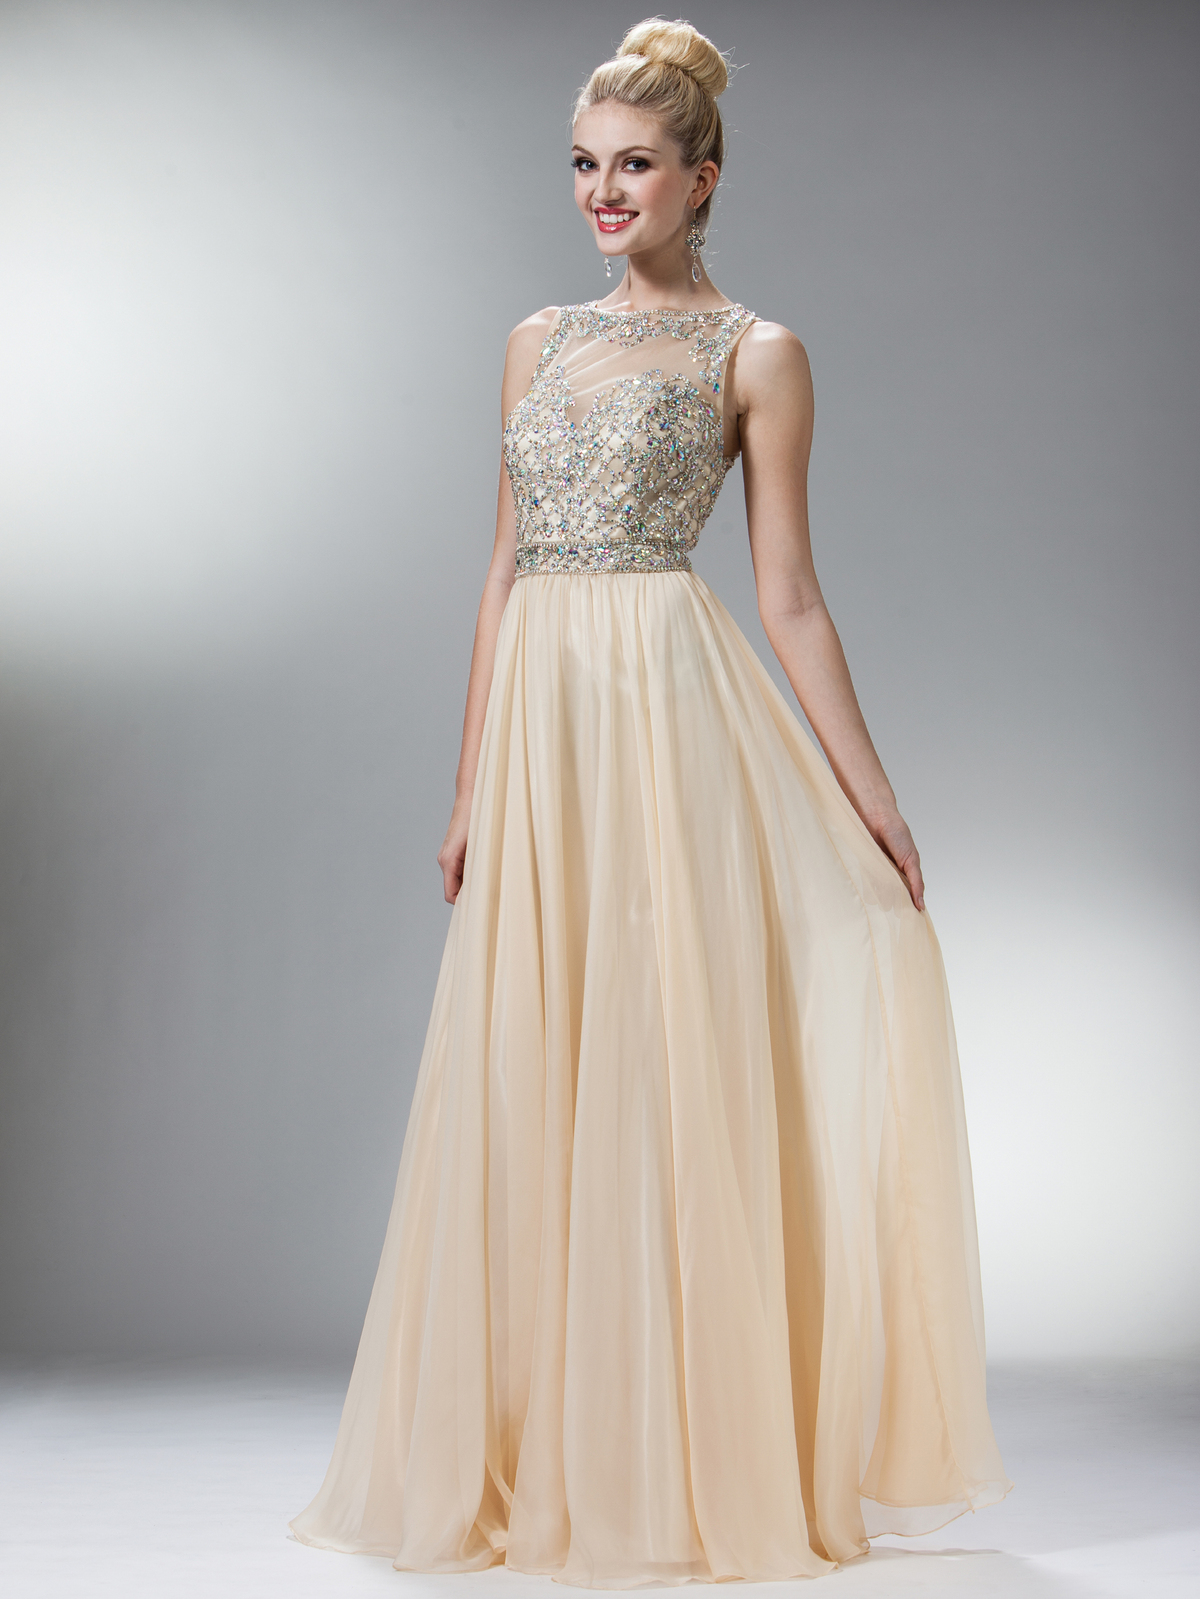 Stunning Strapless Sweetheart Gems Prom Dress  Sung Boutique L.A.